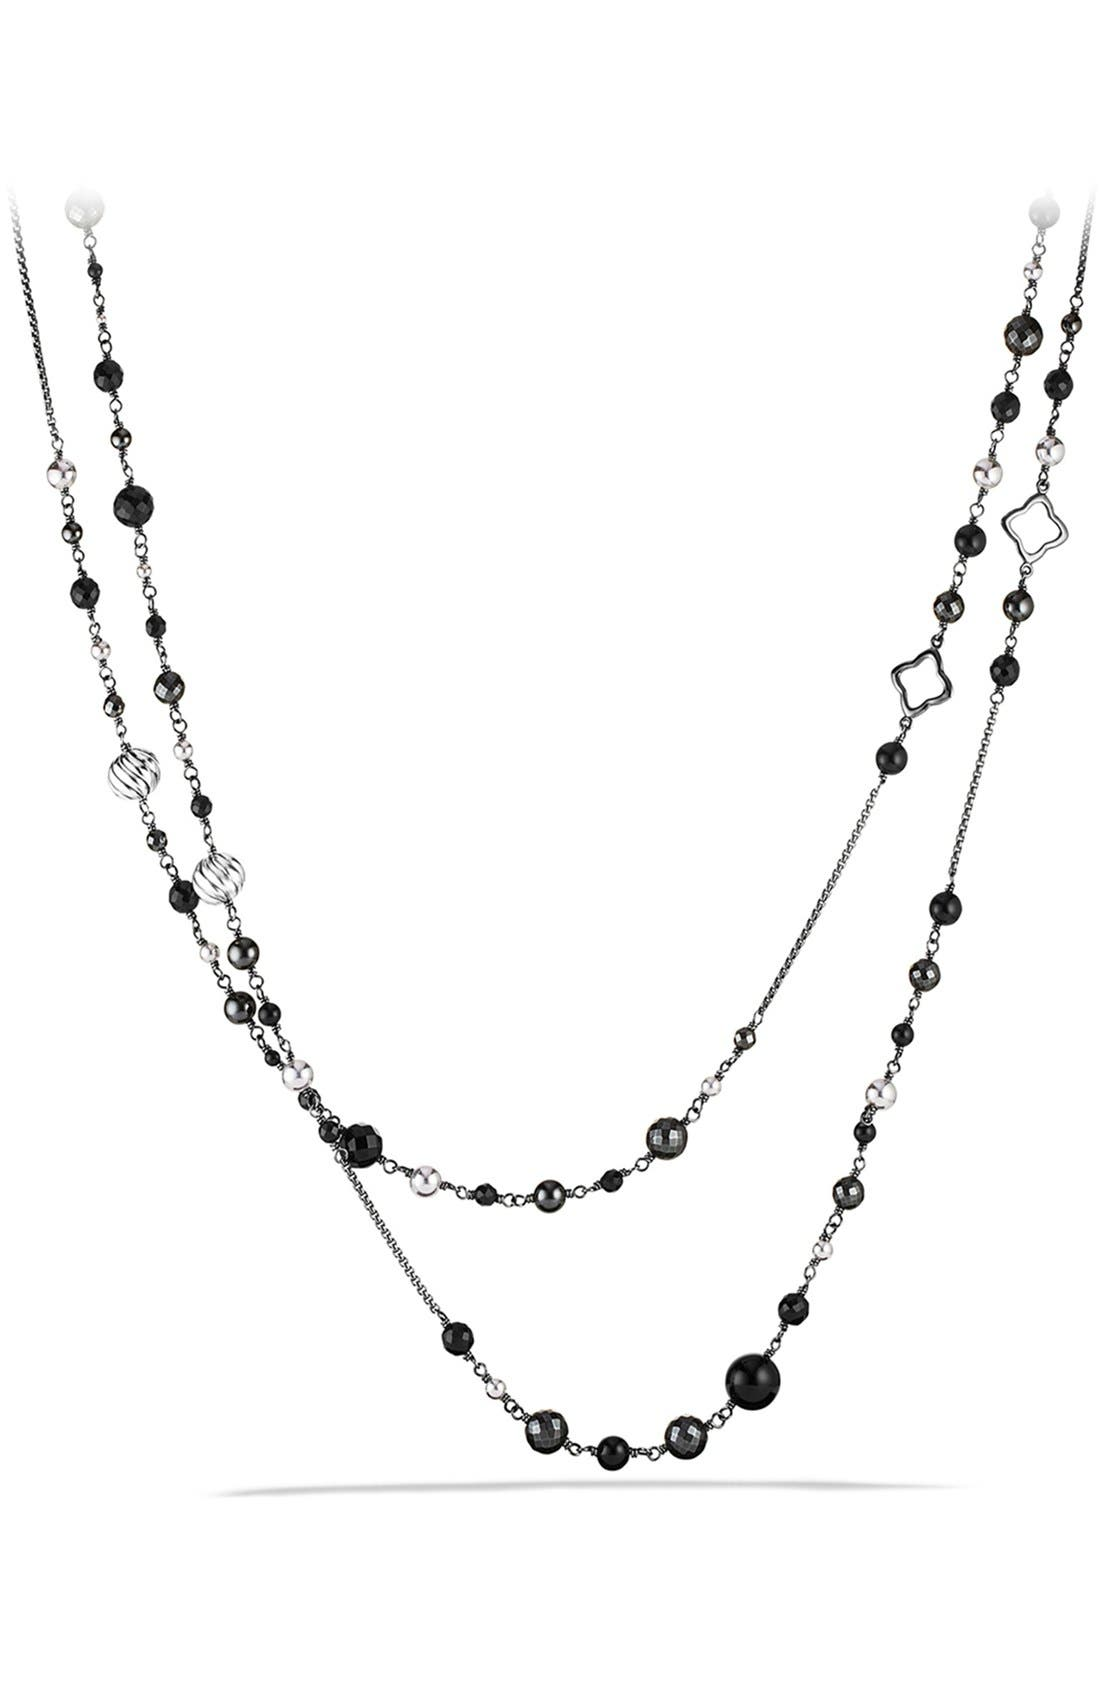 DAVID YURMAN 'DY Elements' Chain Necklace with Black Onyx and Hematine, Main, color, BLACK ONYX